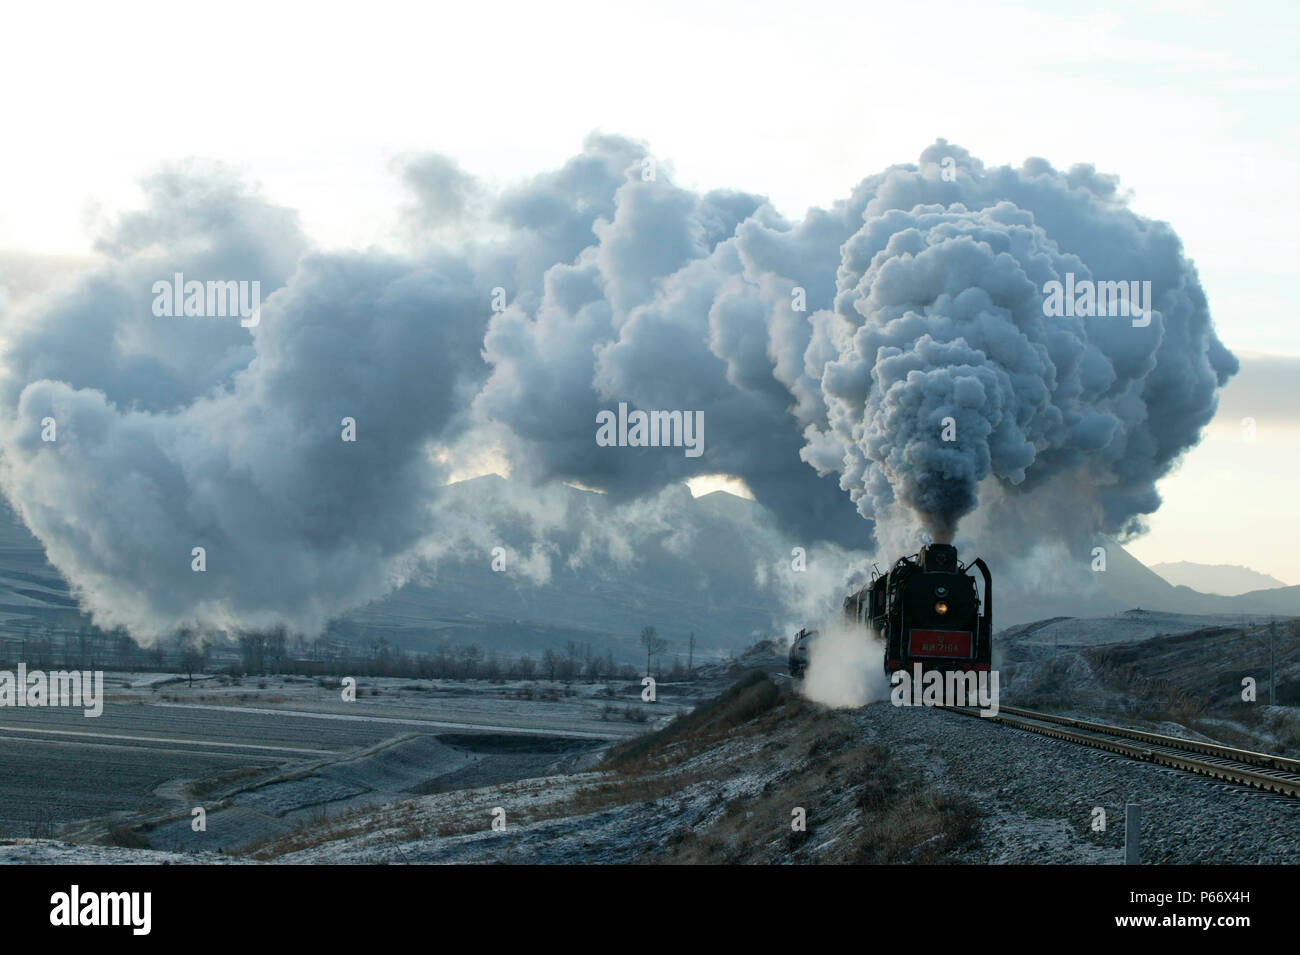 0085 Stock Photos & 0085 Stock Images - Page 3 - Alamy